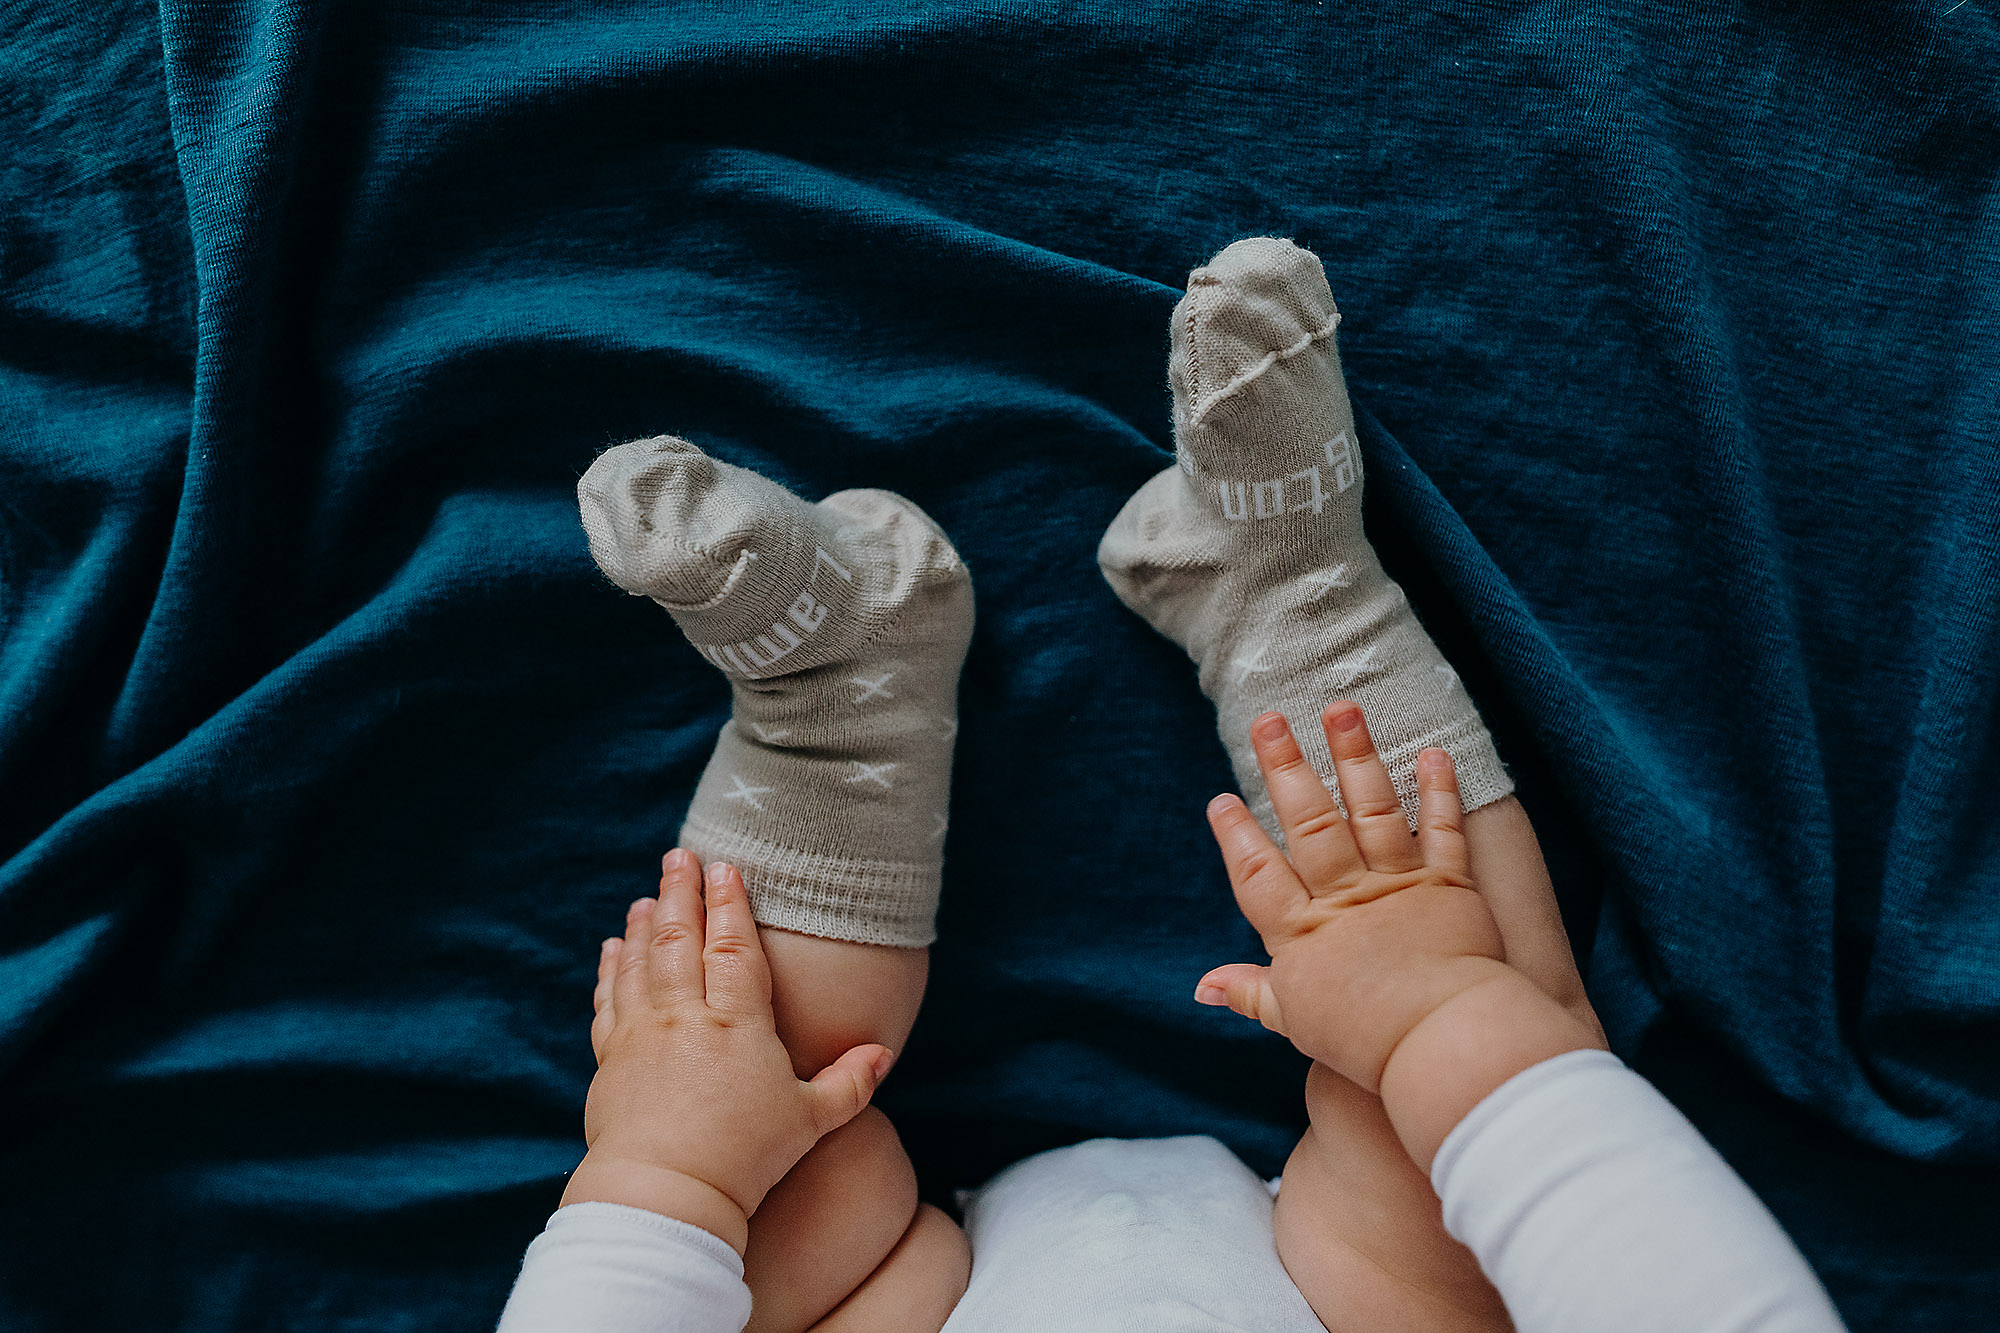 lamington-socks-product-photo-baby-ted christchurch commercial photographer